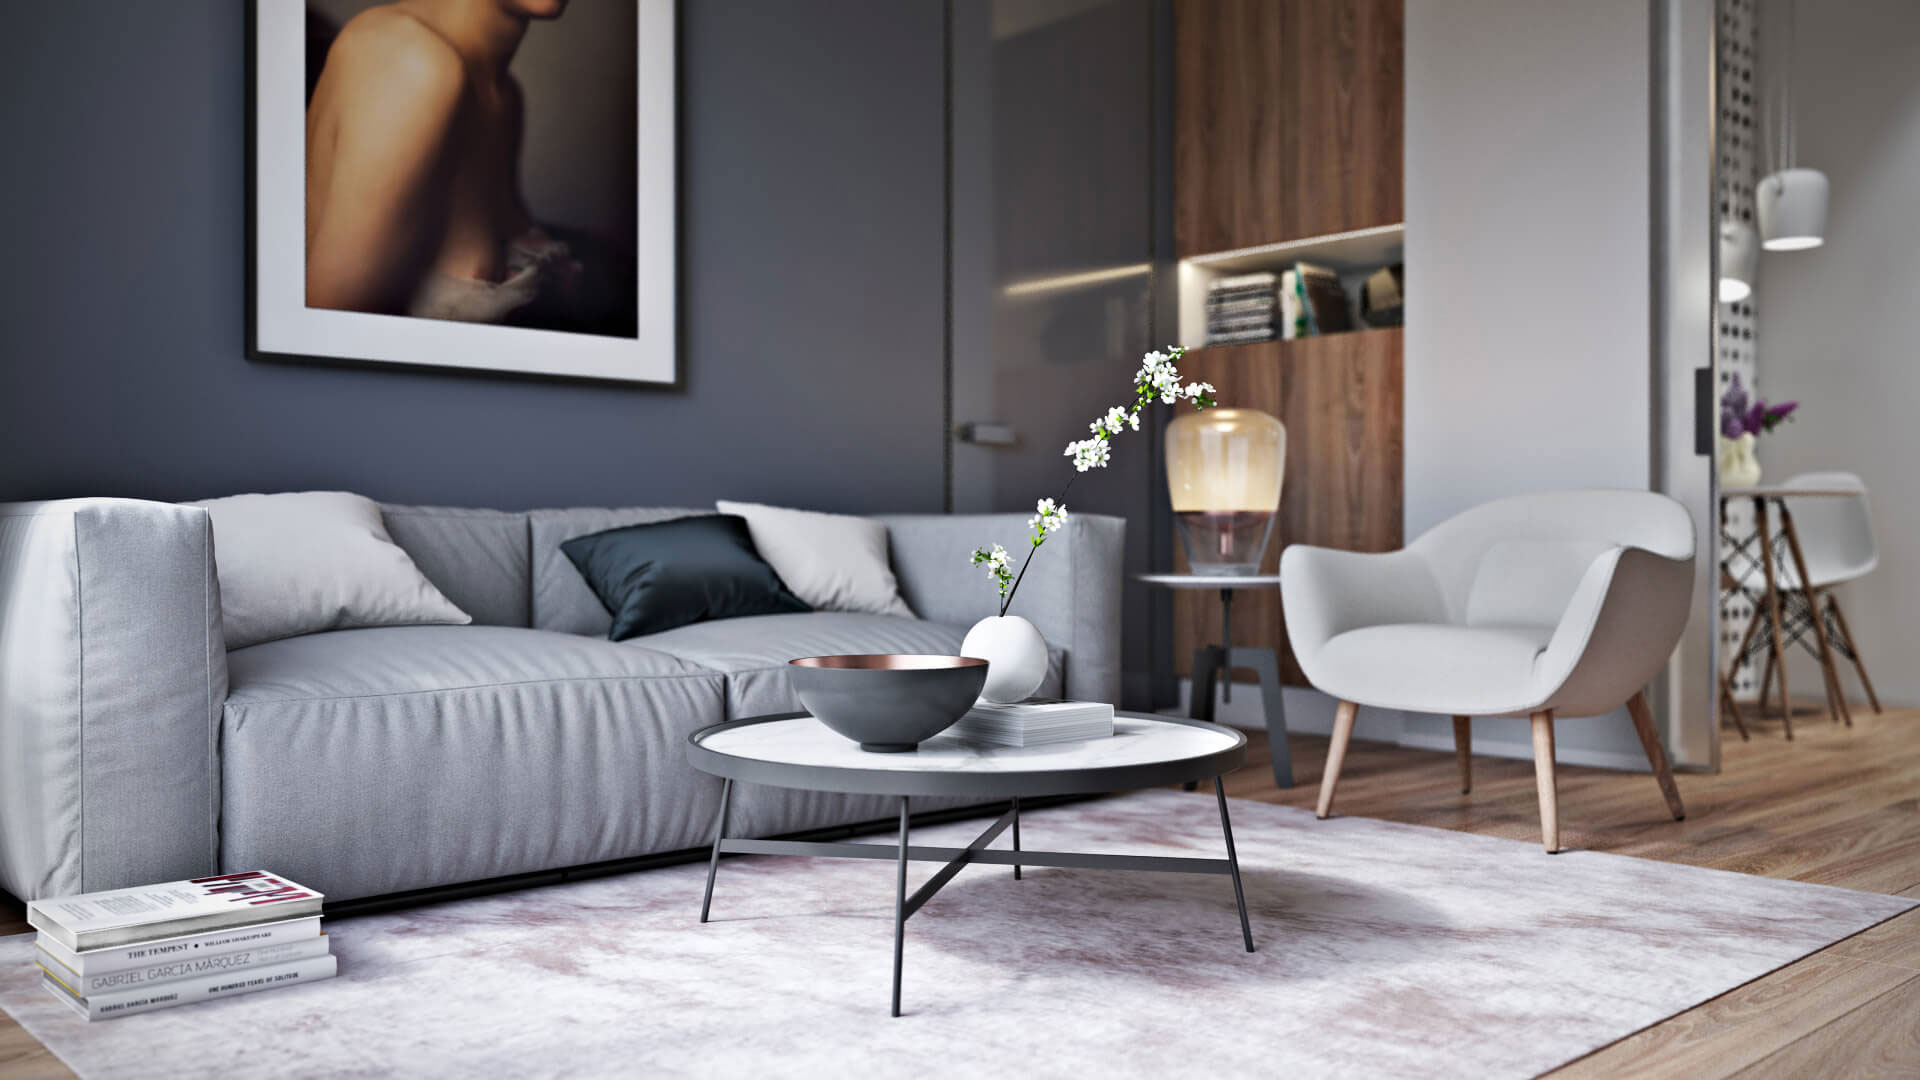 A Product Image for Soft Furniture Created in 3D Soft